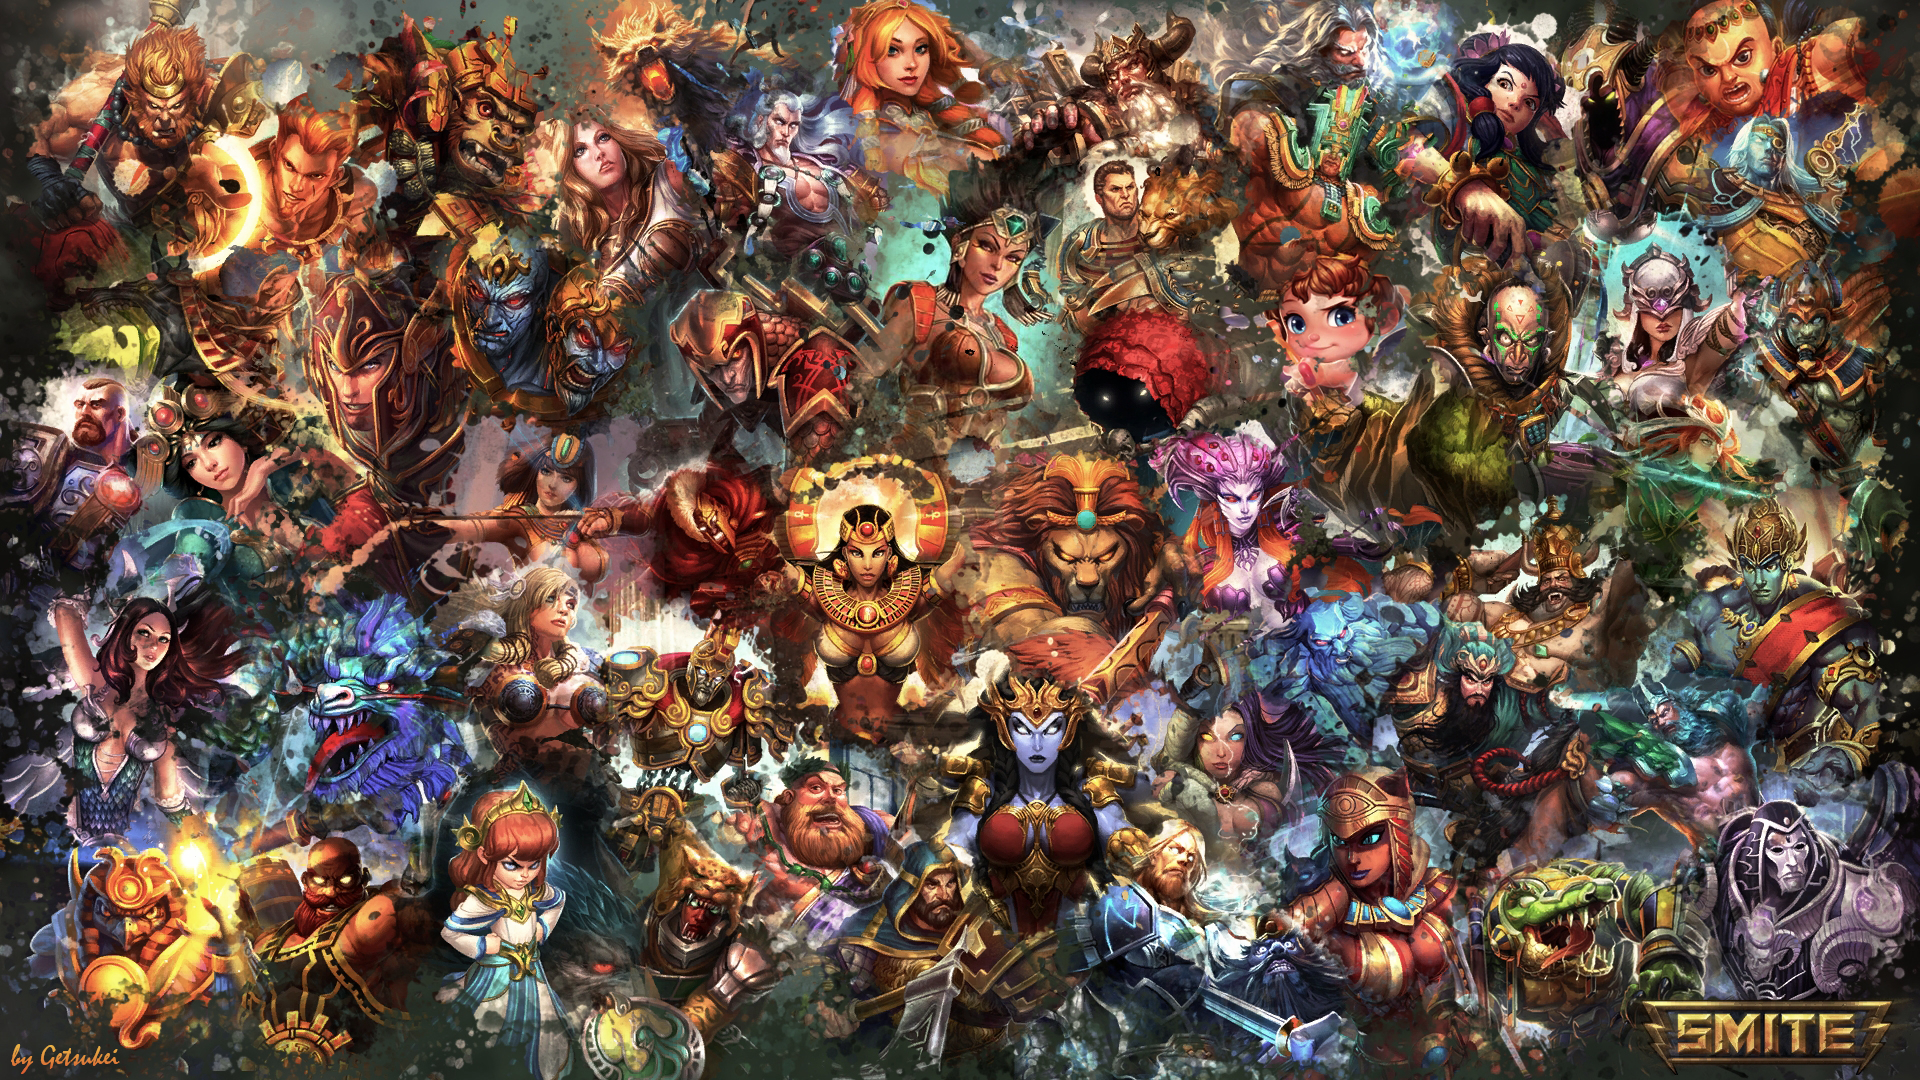 SMITE   All Gods Wallpaper Serqet Edition by Getsukeii 1920x1080